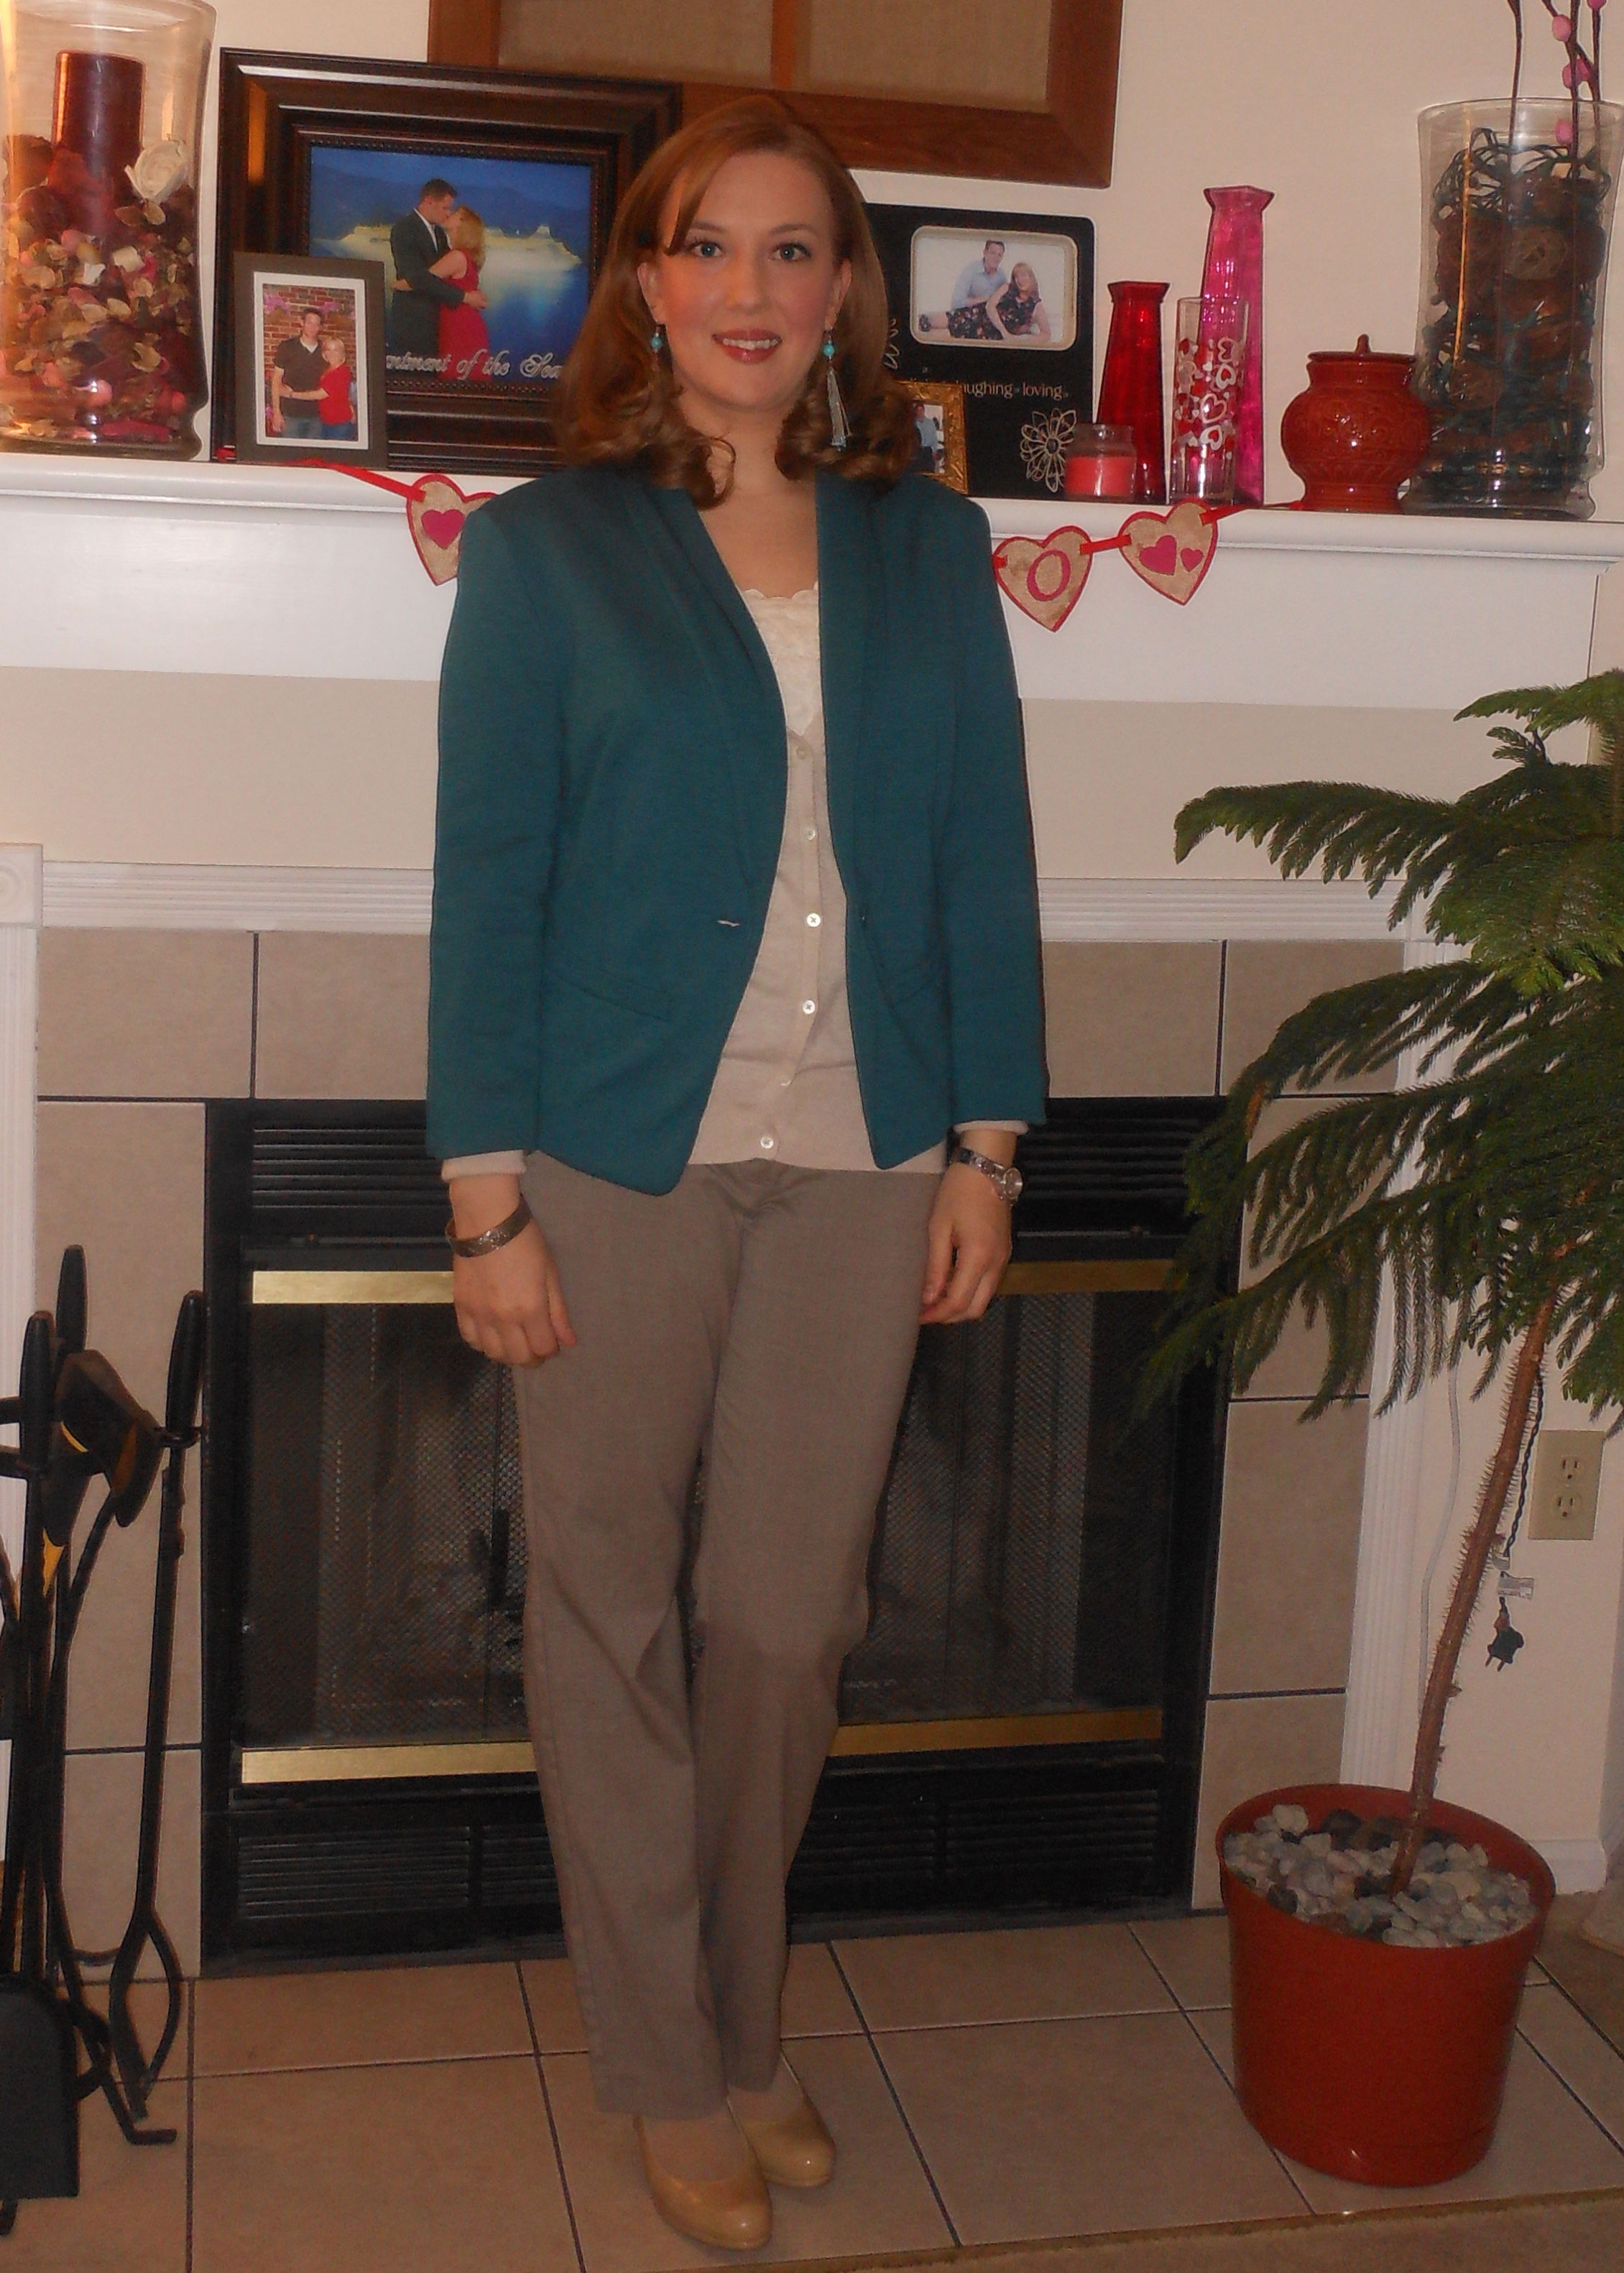 Teal blazer: Target. Turquoise and silver earrings: Wal-Mart. Cream cami: gift. Oatmeal cardigan: Old Navy. Silver bracelet: gift. Silver watch: Fossil. Tan trousers: NY&Co. Nude pumps: Wal-Mart.